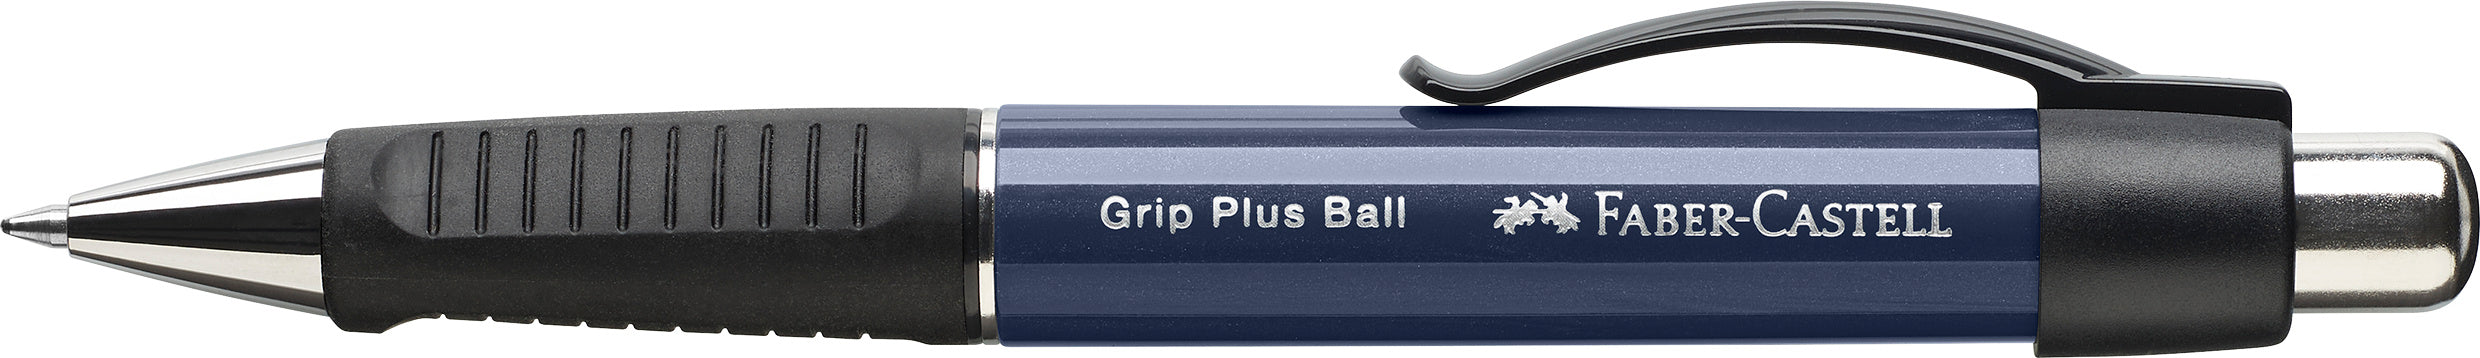 Faber-castell Grip Plus Ballpoint Pen navy blue